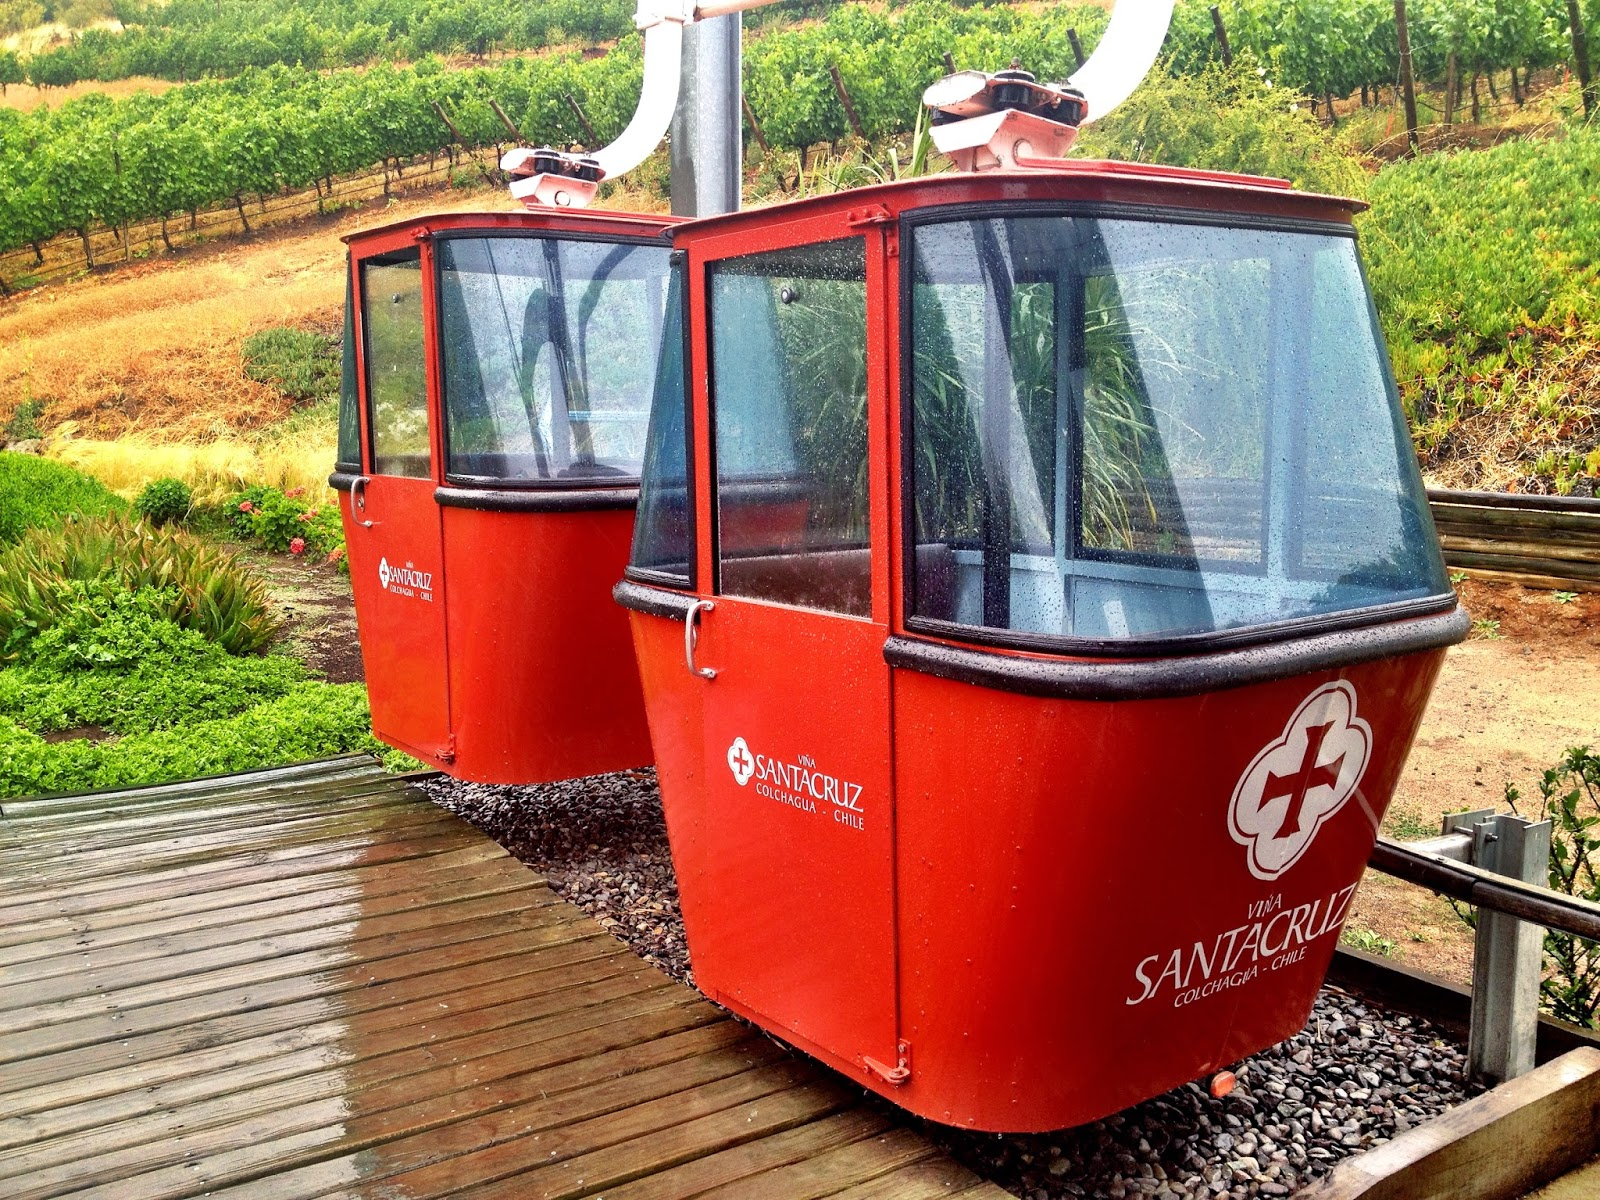 Santa Cruz winery - funicular